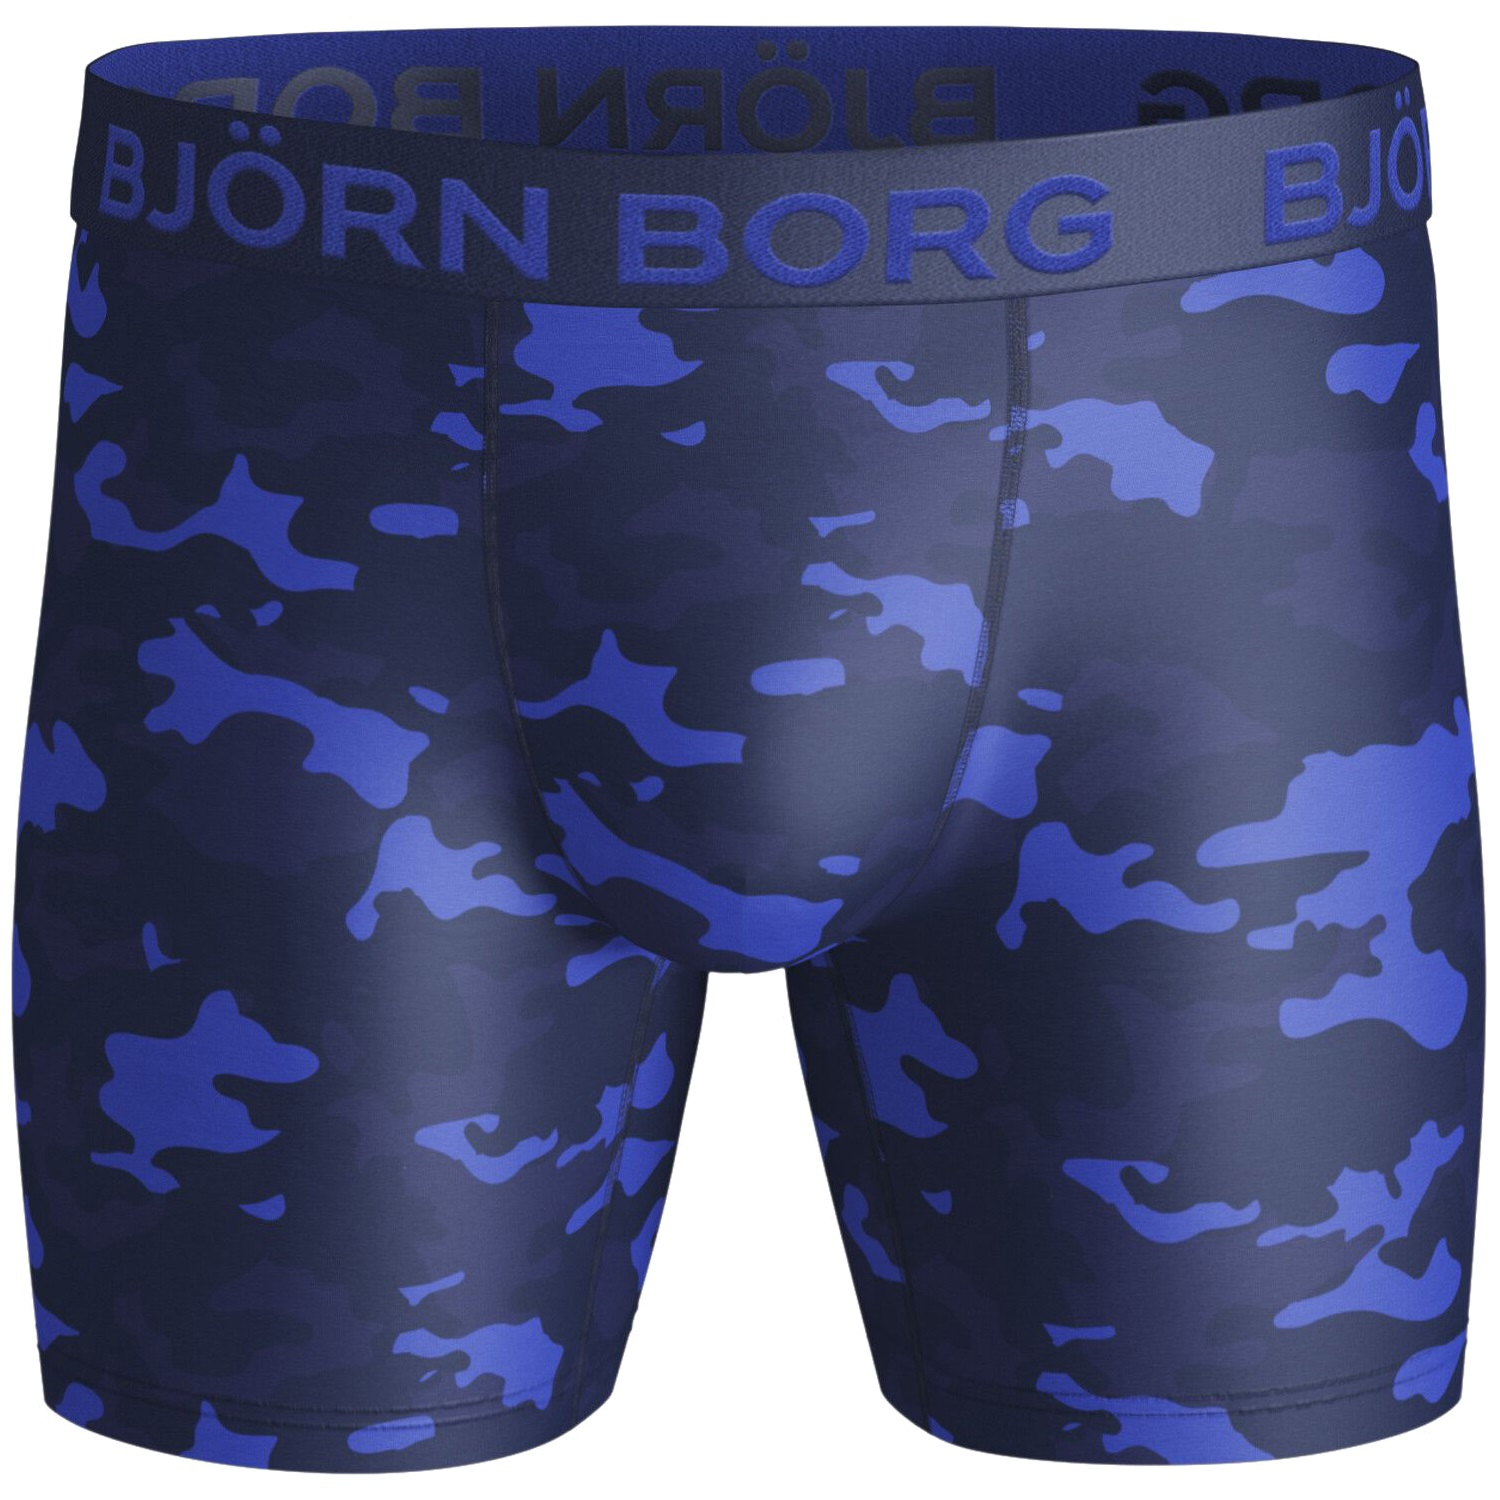 1-Pack Boxers Court Navy Camo